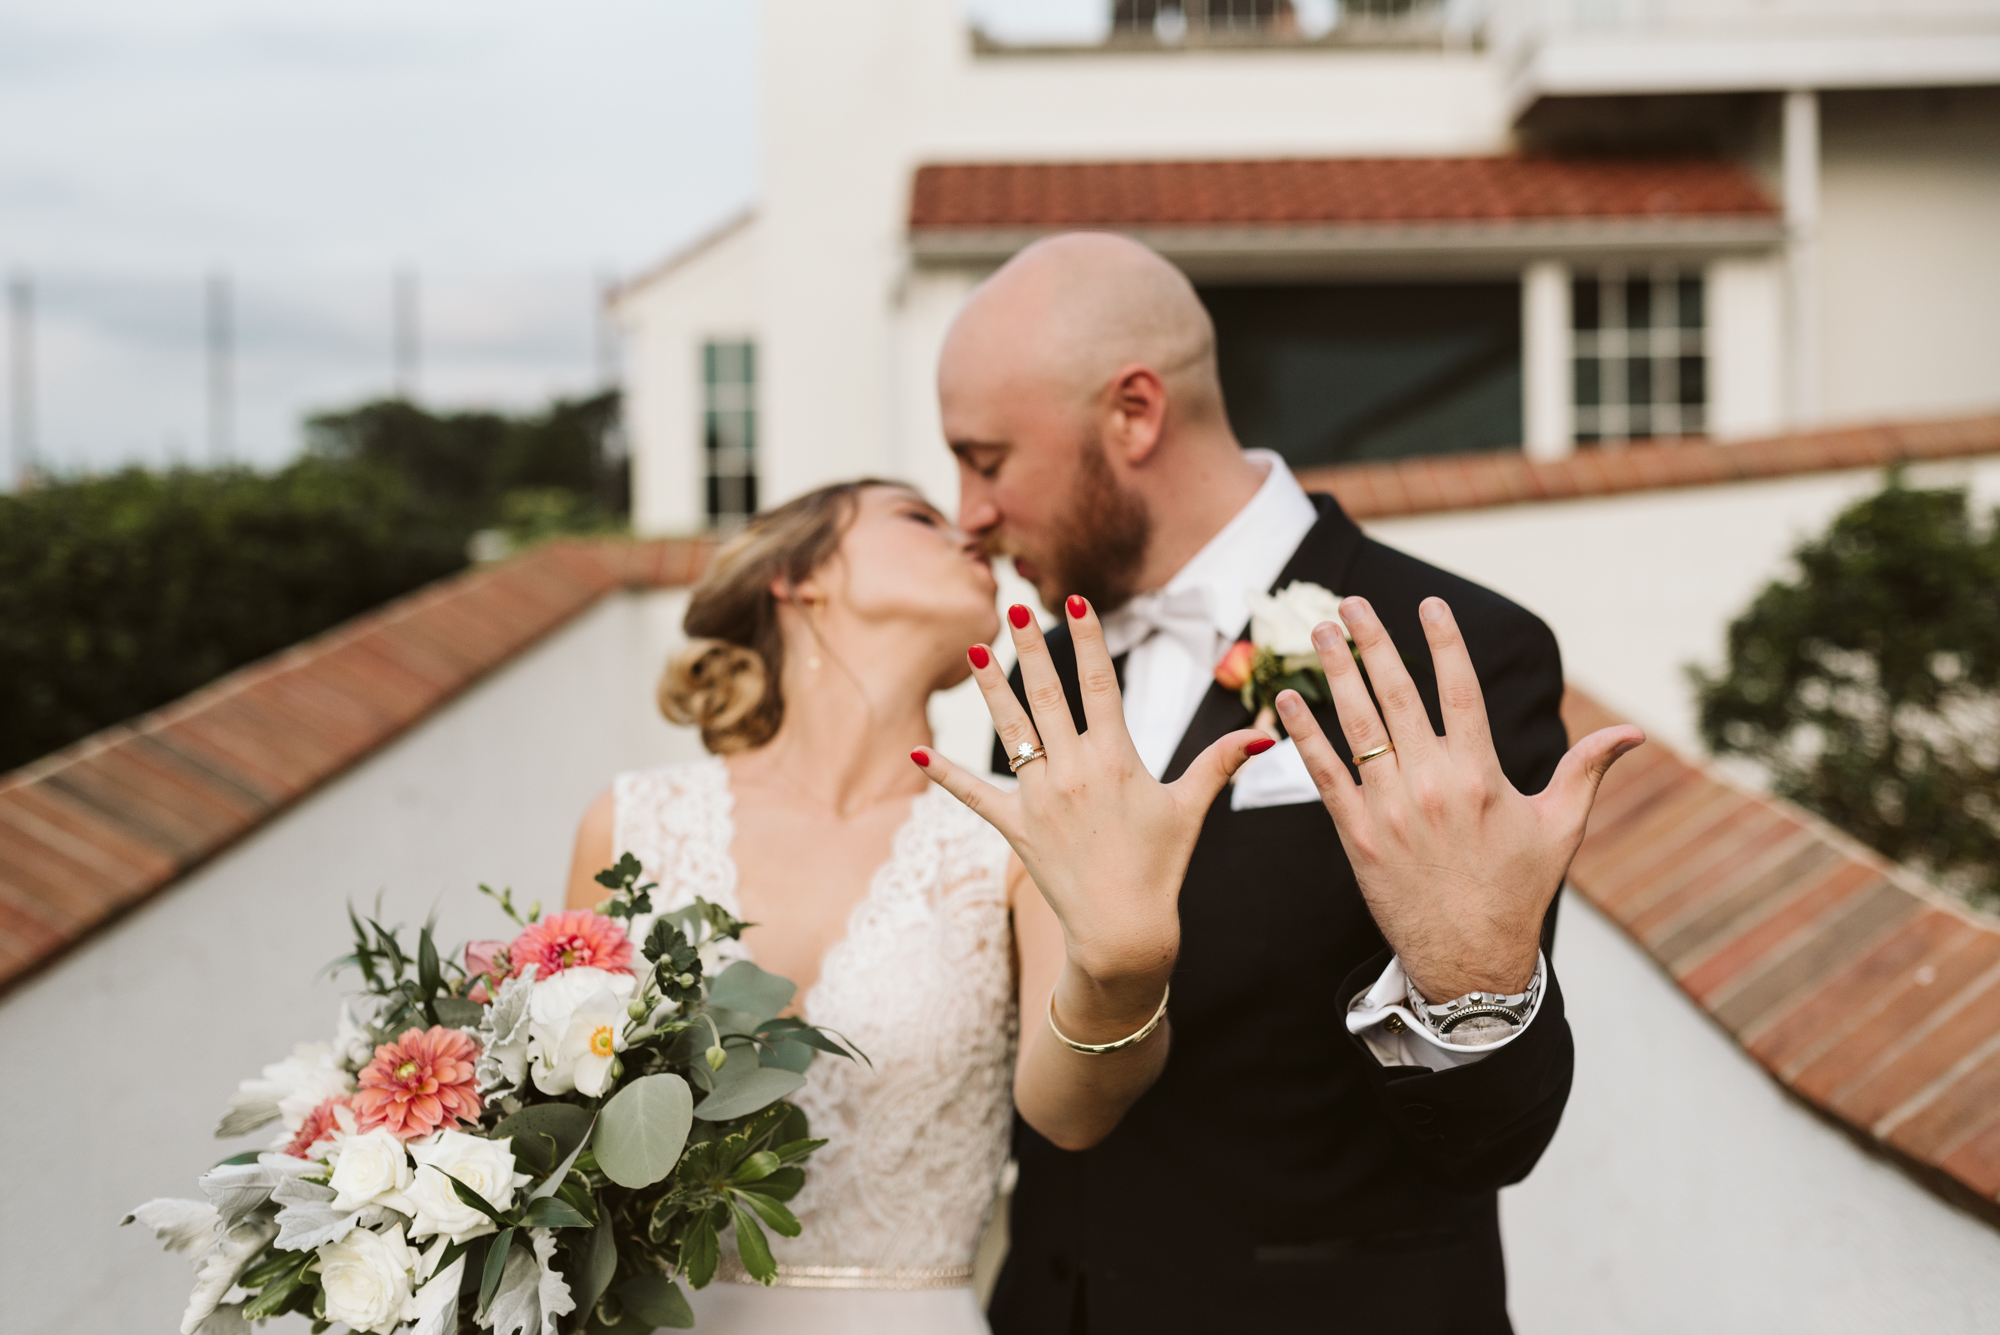 Elegant, Columbia Country Club, Chevy Chase Maryland, Baltimore Wedding Photographer, Classic, Bride and groom Kissing and Showing Off Boone & Sons Rings